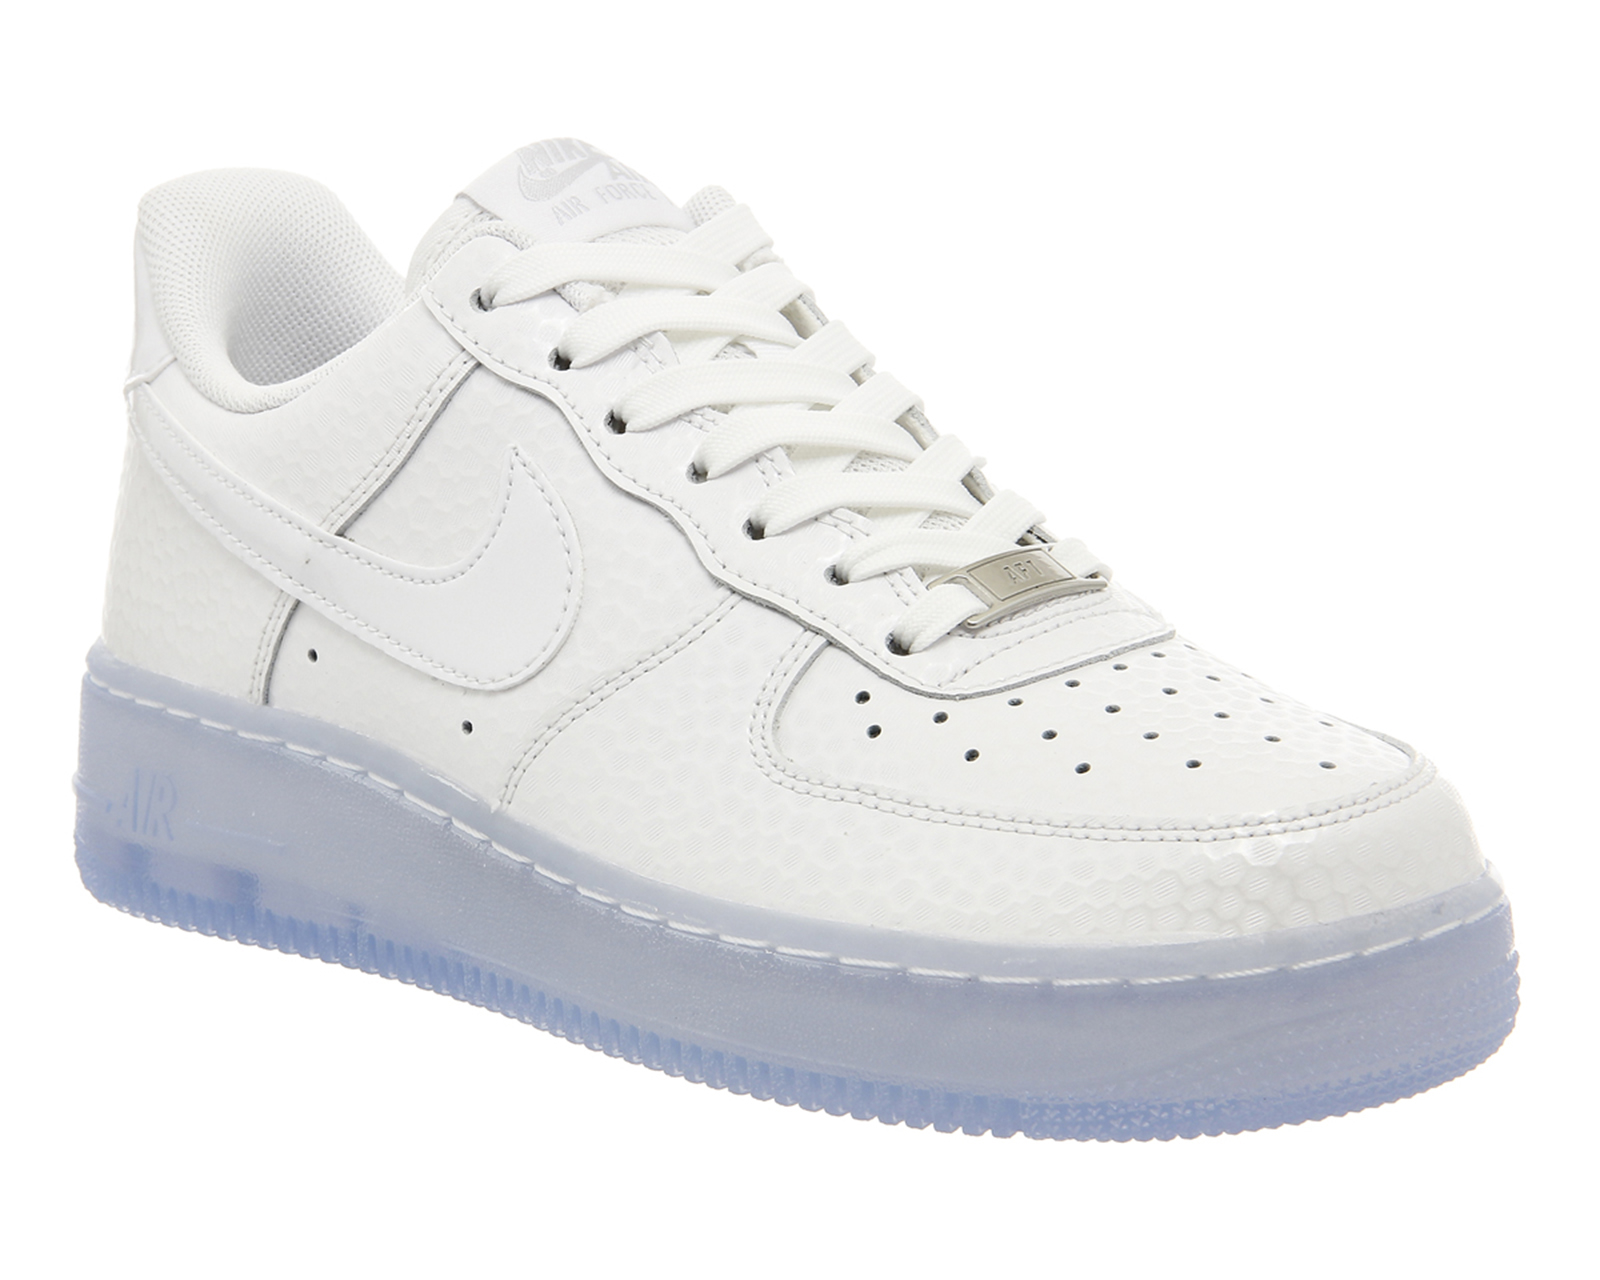 Nike Air Force 1 '07 Prm Wmns in White